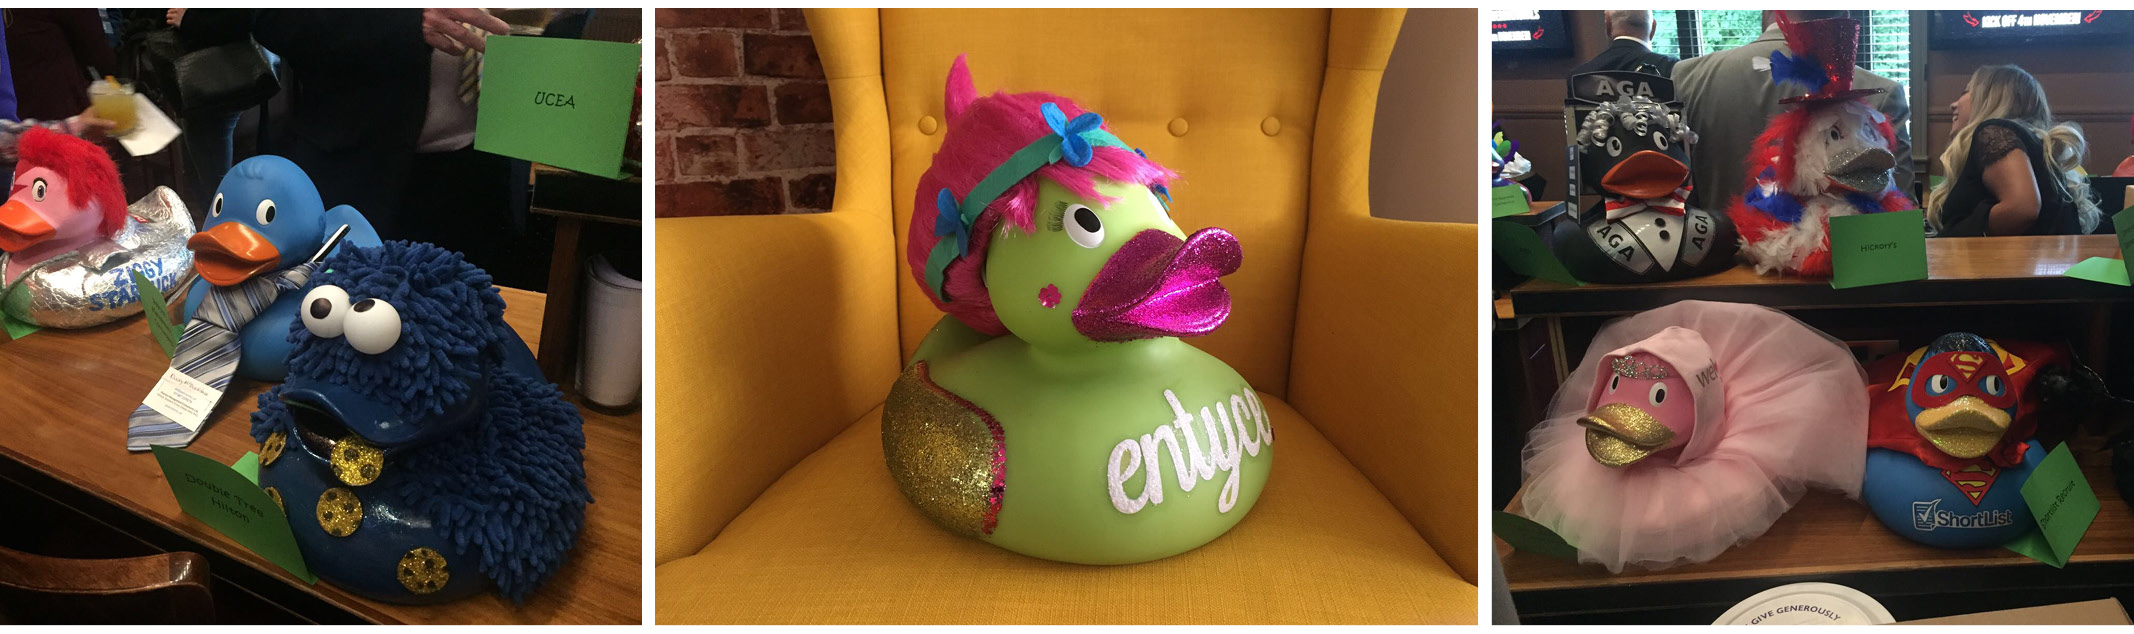 Entyce support the Countess Charity with Poppy the duck